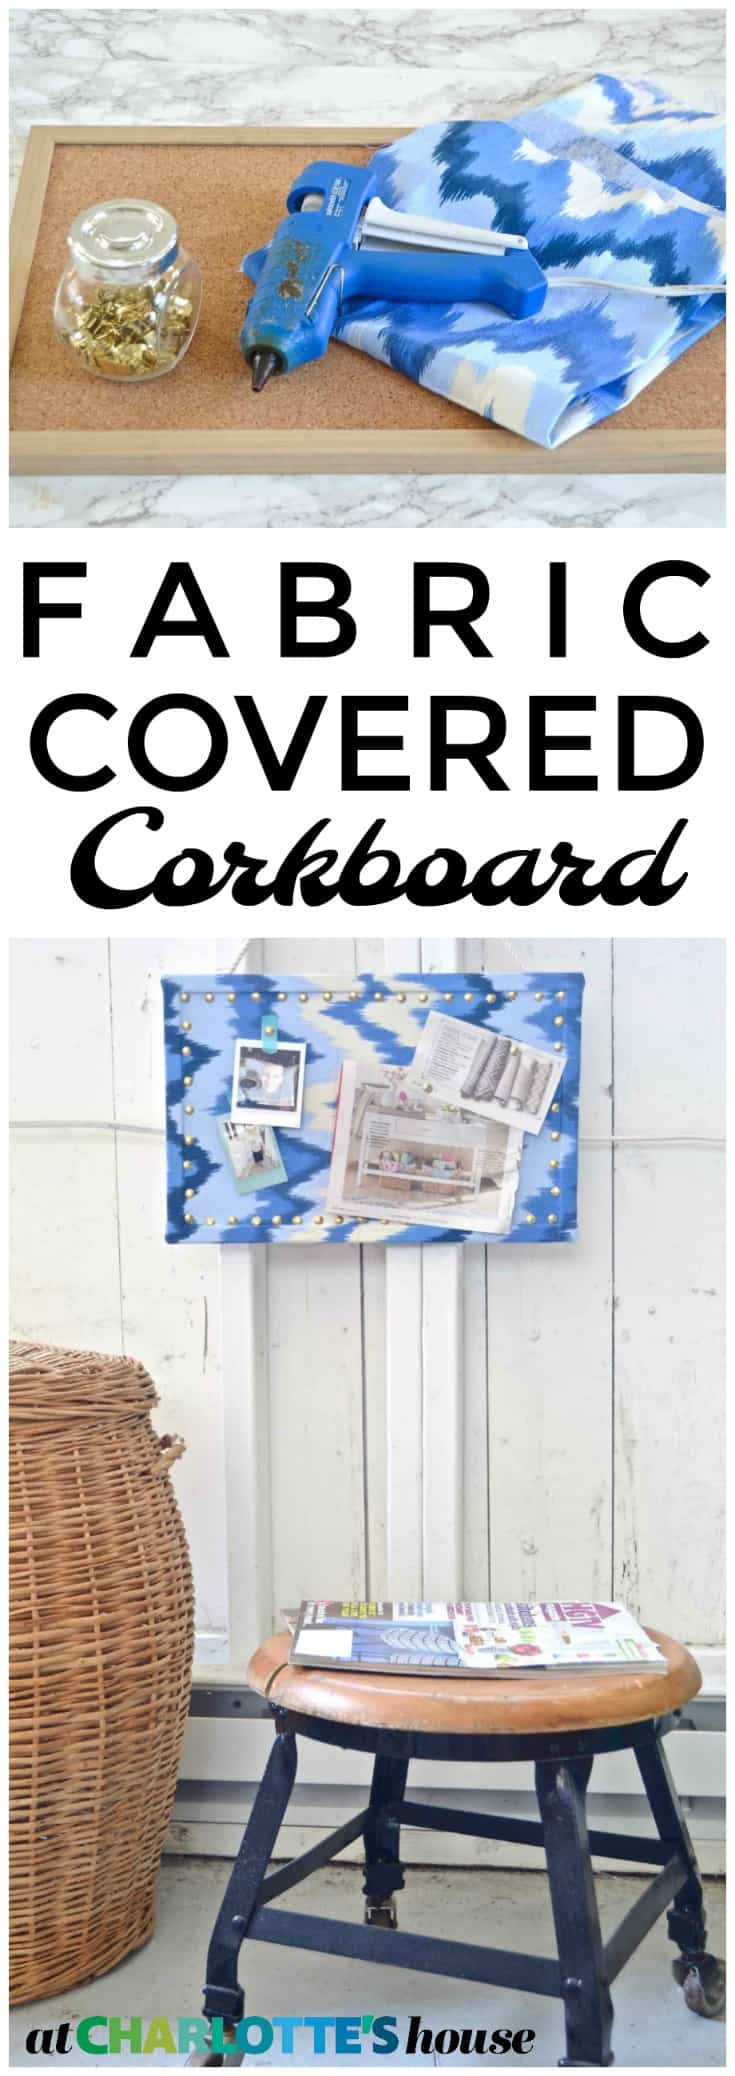 update an old cork board to be a chic and transformed